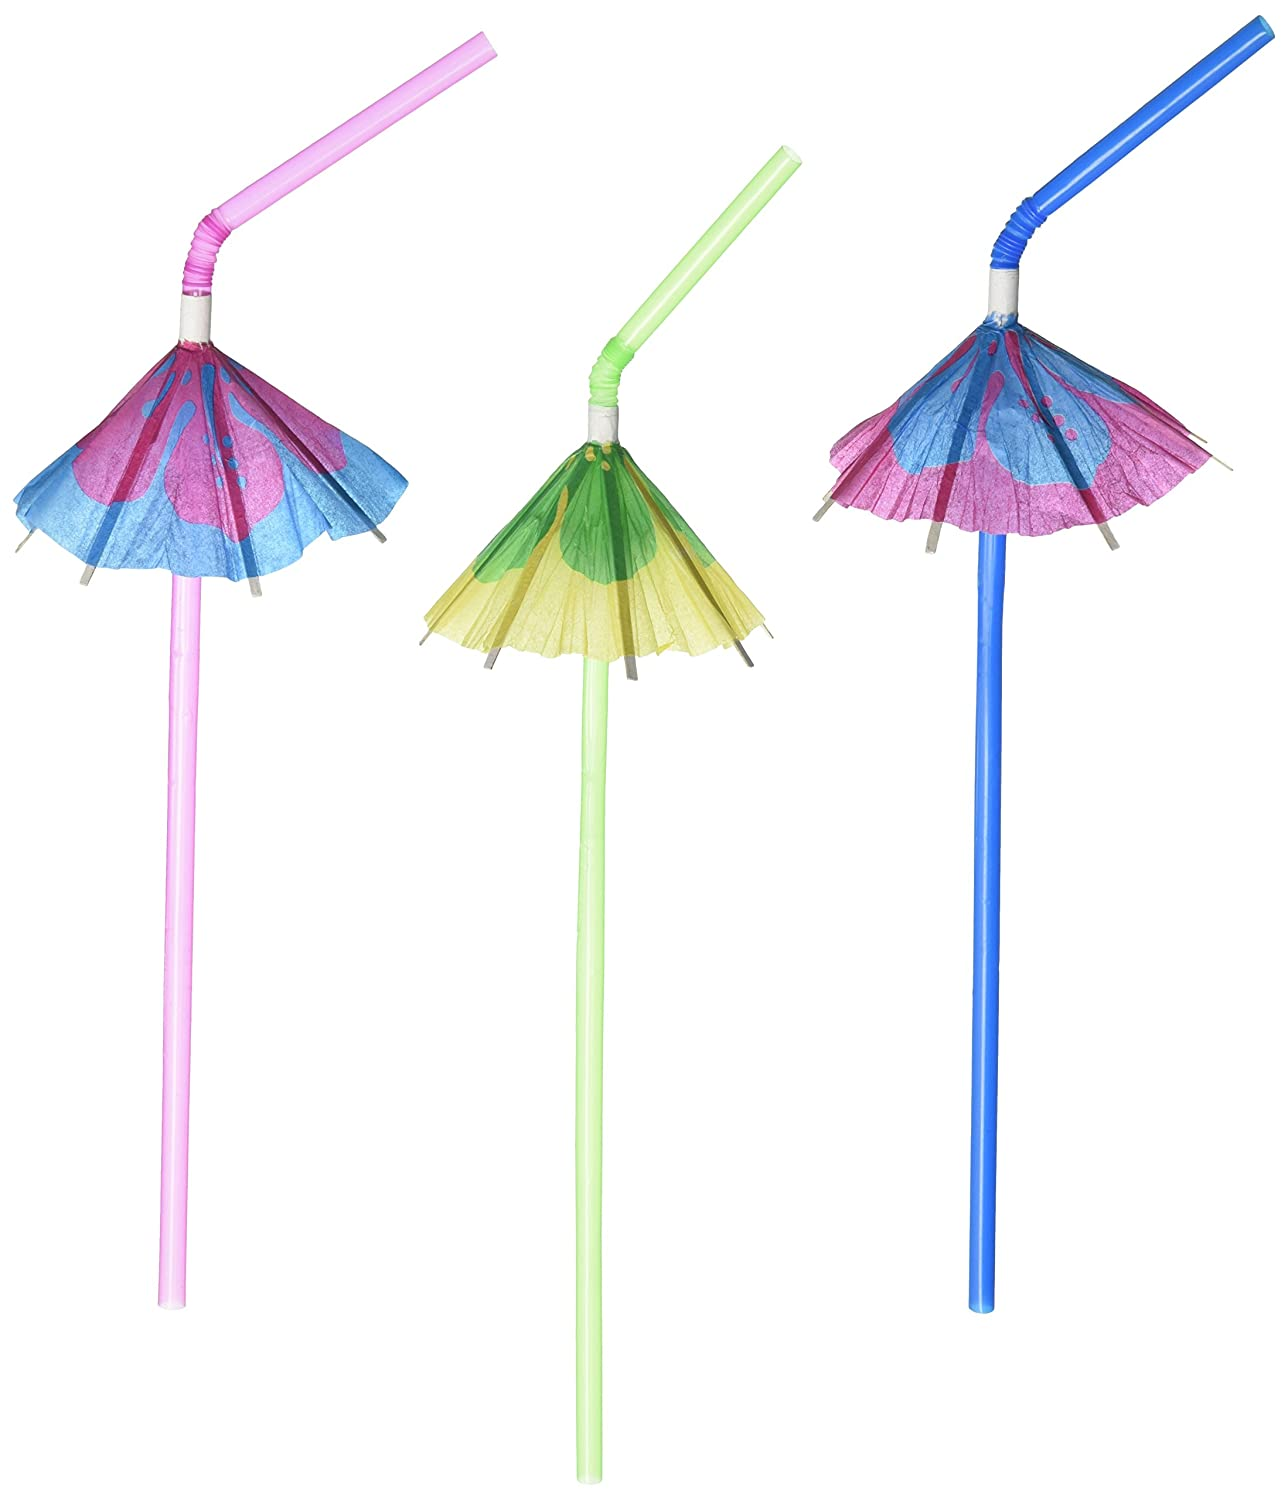 Fun Express Multicolor Tropical Umbrella Straws (Pack of 12) by Fun Express FX IN-34/1268-4dz